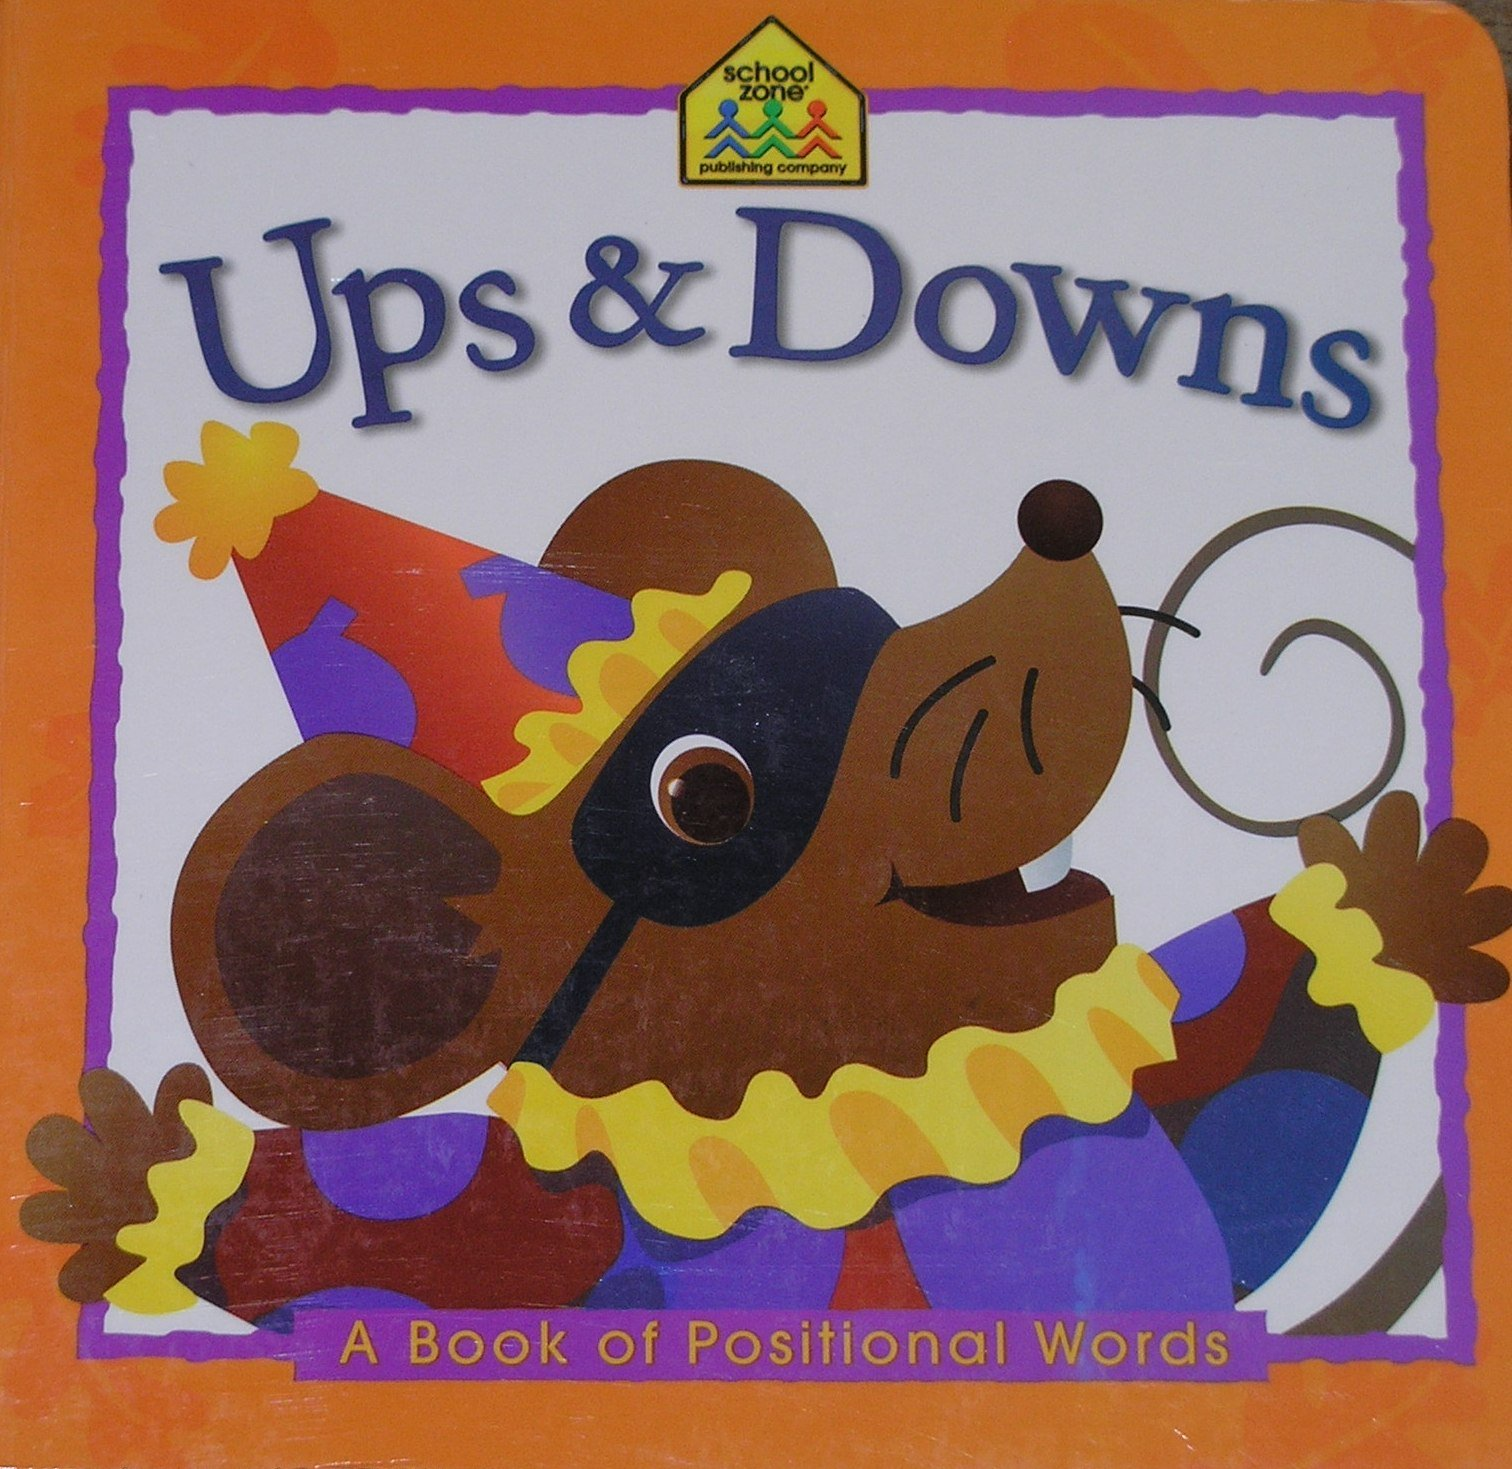 Ups and Downs: A Book of Positional Words